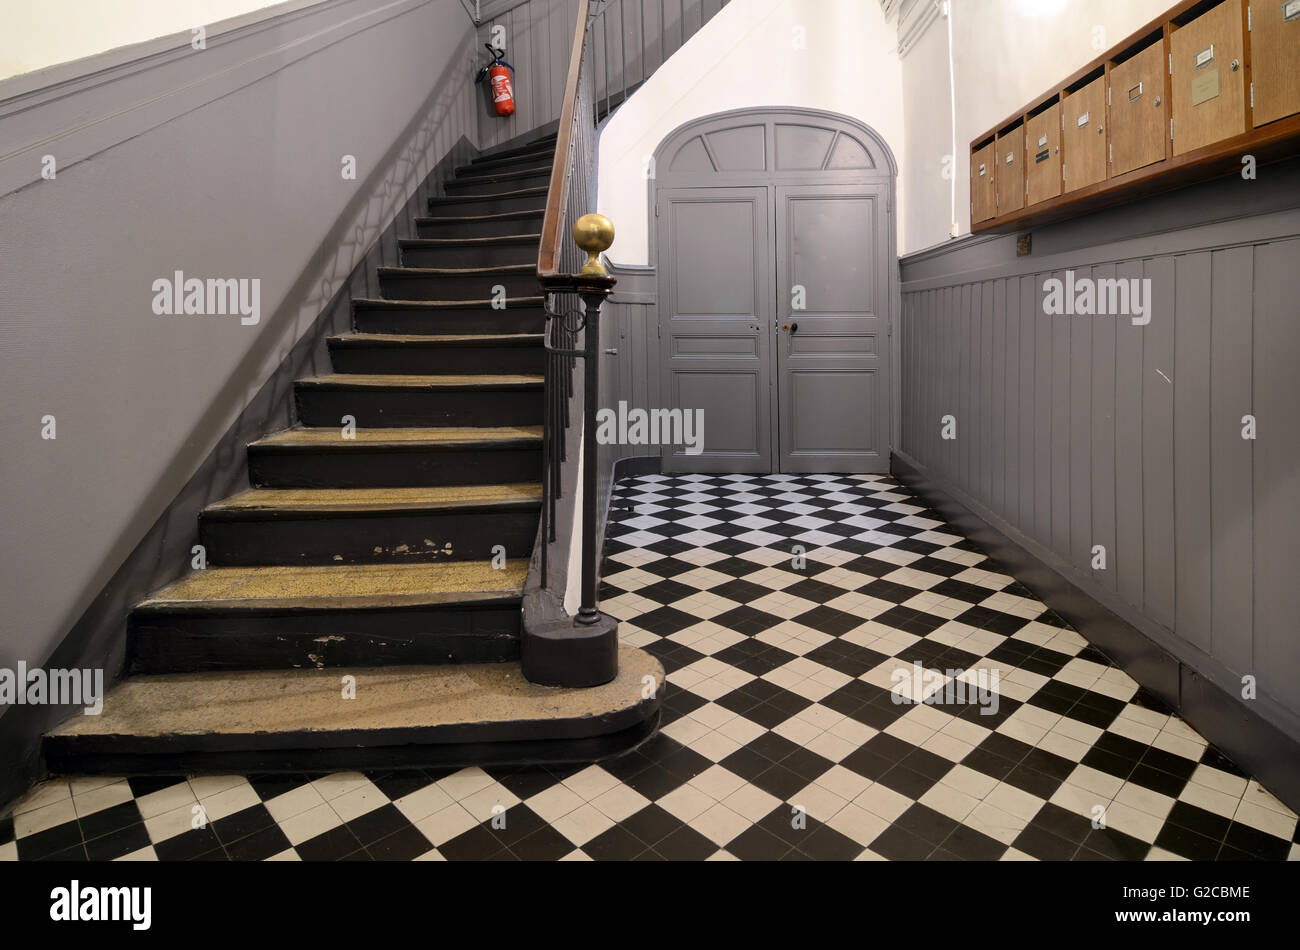 Entrance Hall Stairs & Interior of Historic Townhouse Aix-en-Provence Provence France - Stock Image